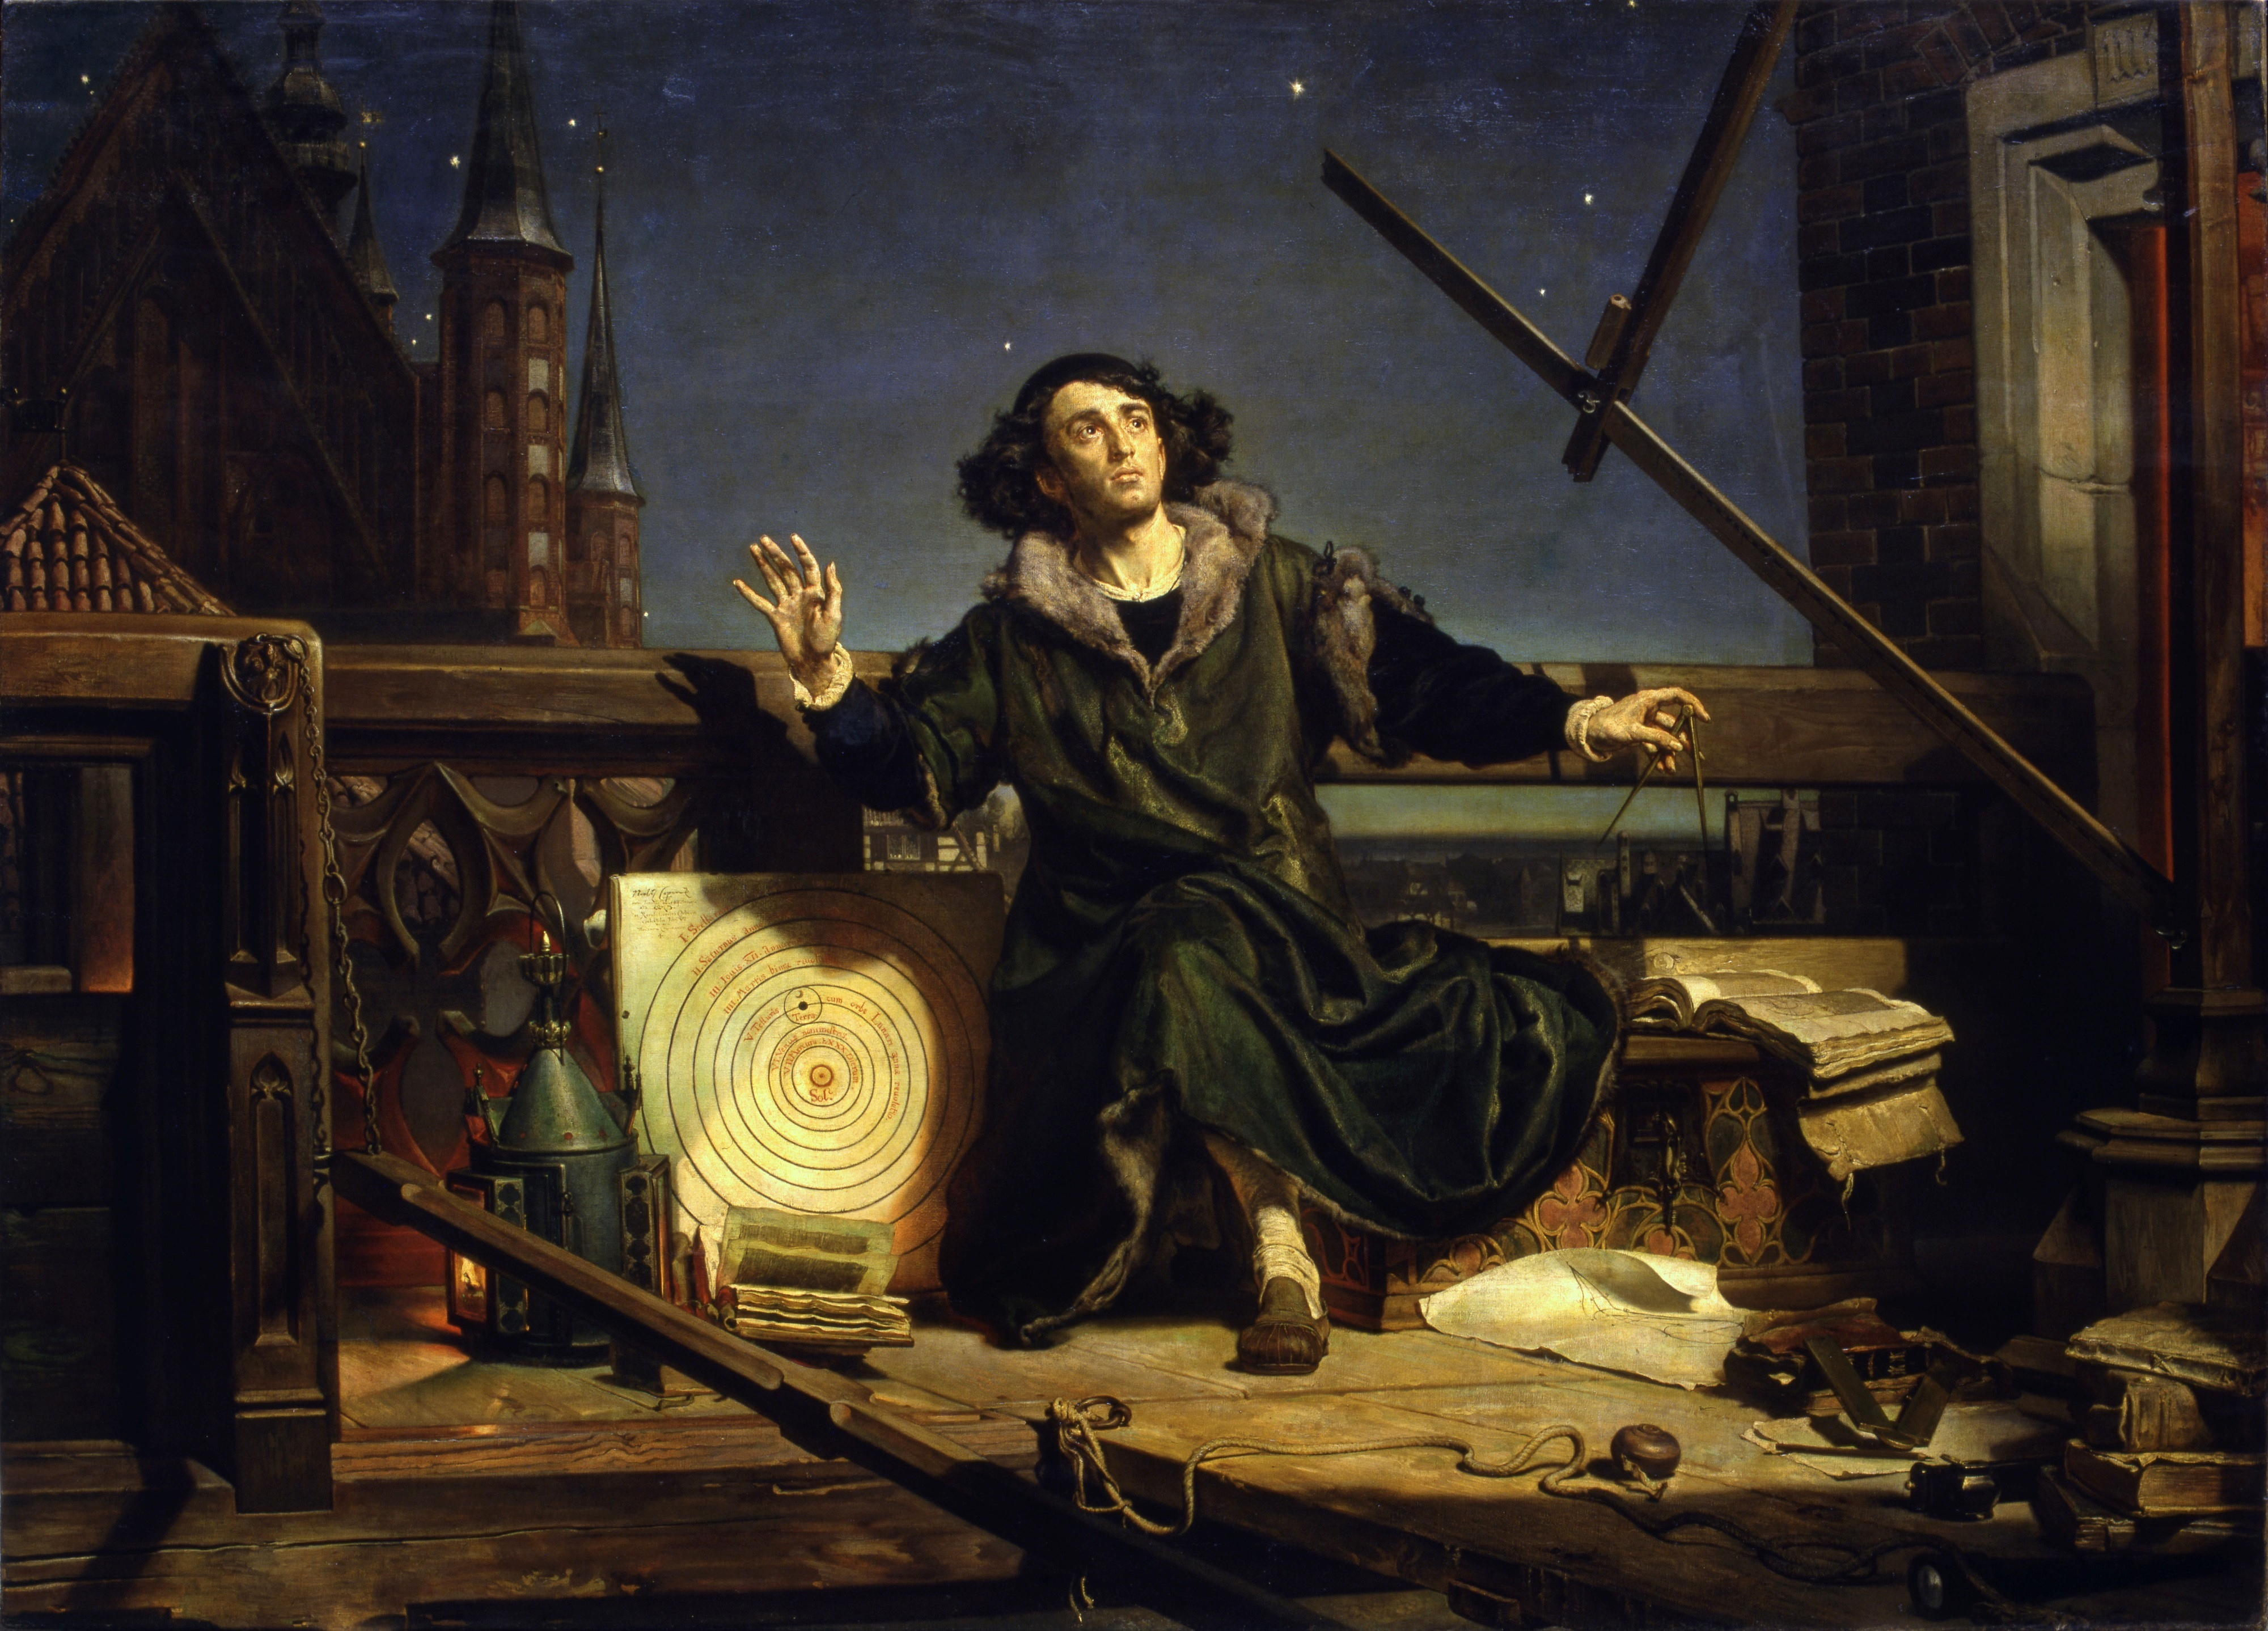 Jan Matejko, 1872. Astronomer Copernicus. Conversation with God.